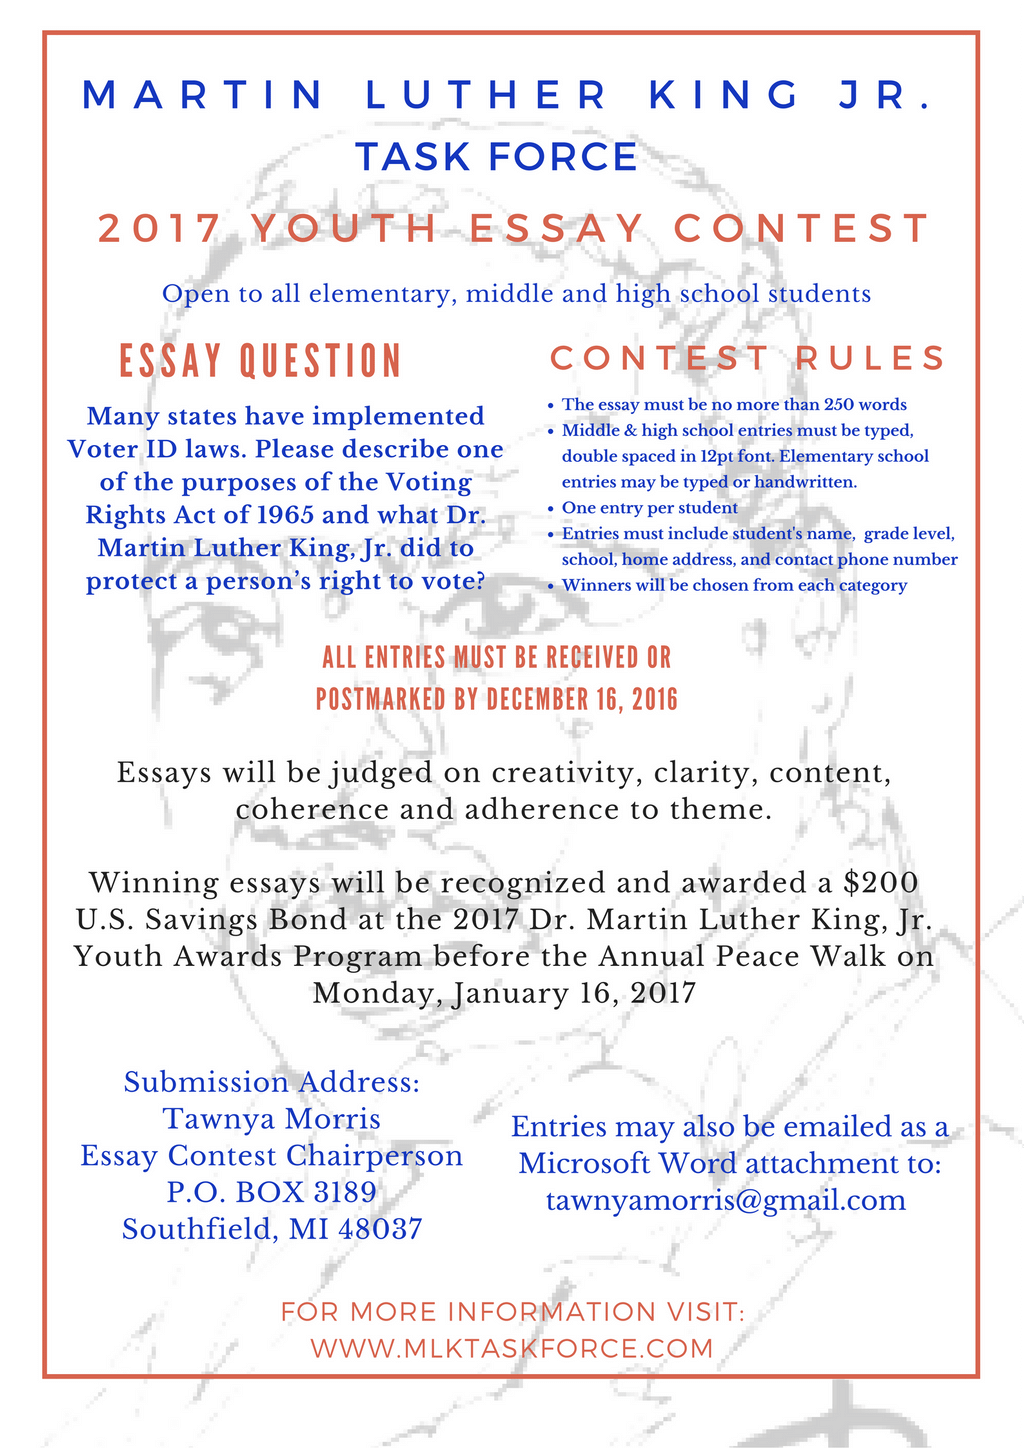 youth essay contest dr martin luther king jr task force inc form here